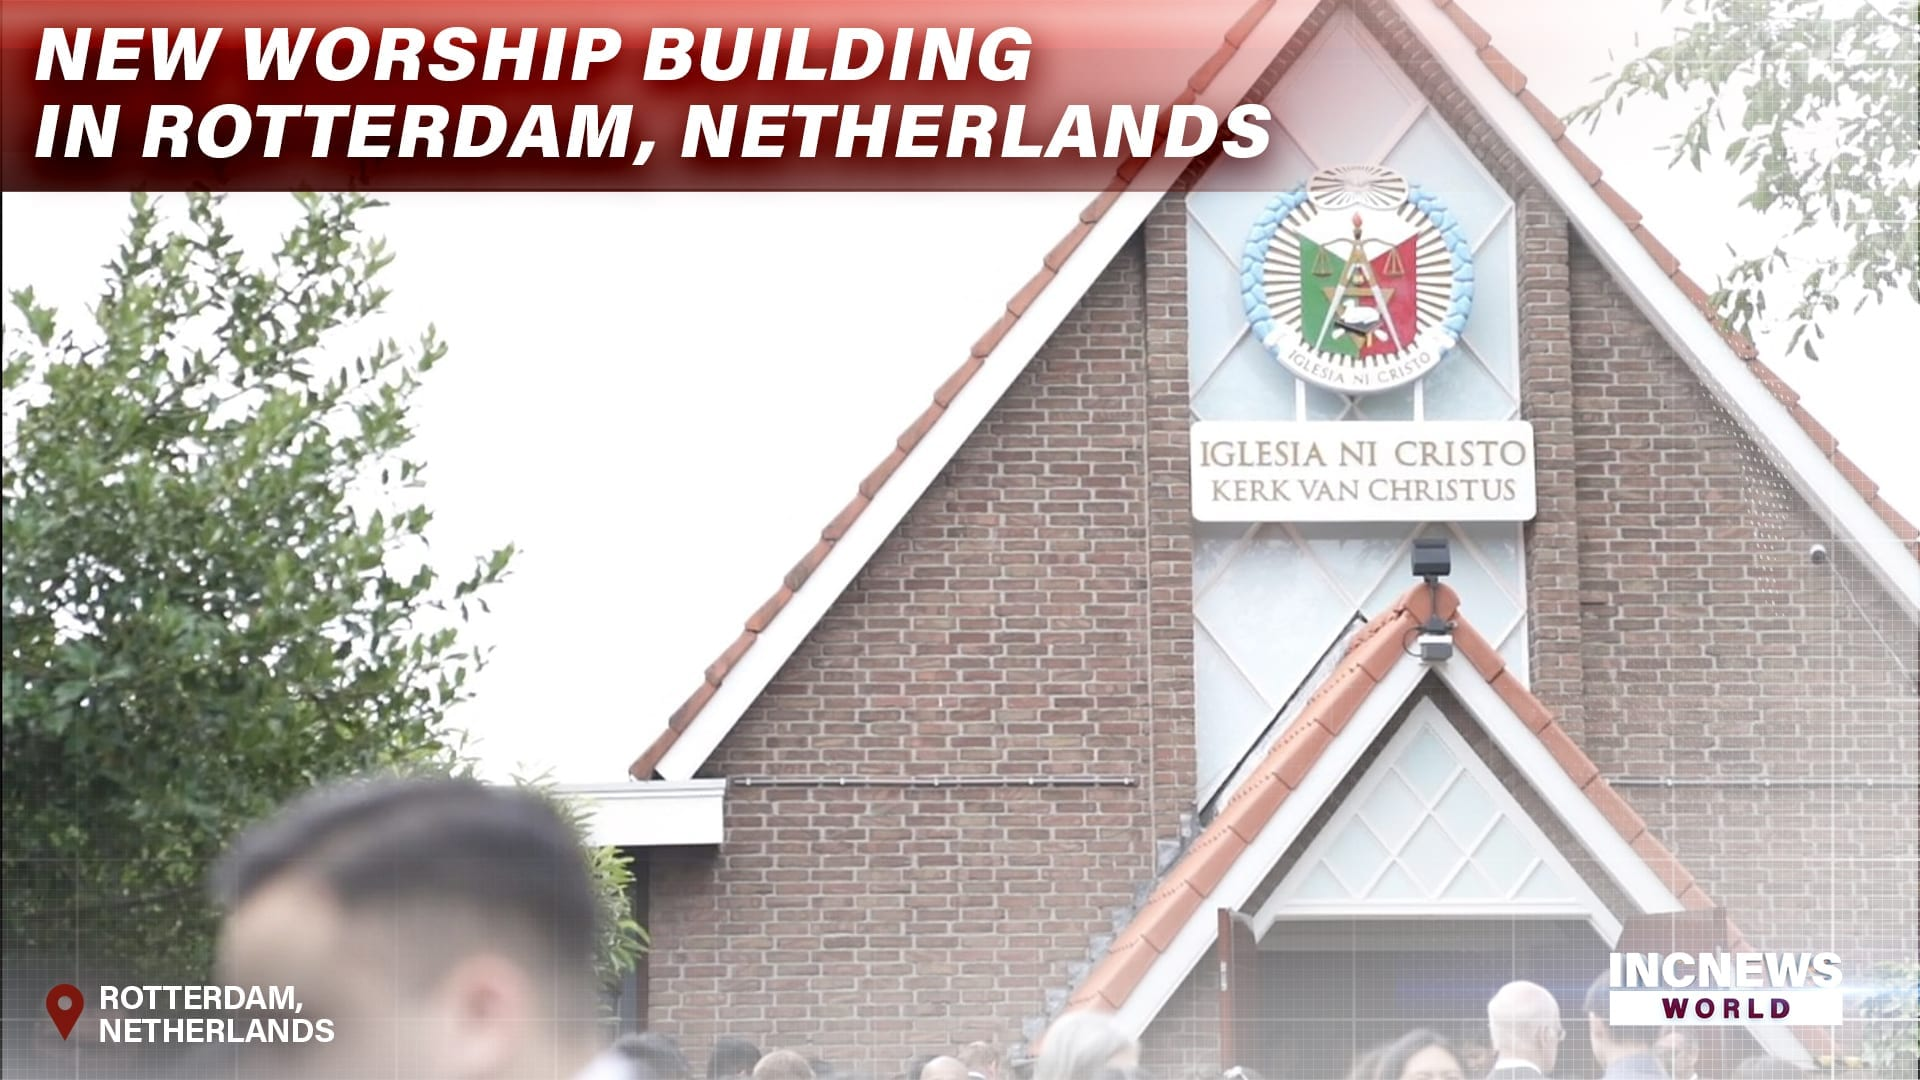 New Worship Building in Rotterdam, Netherlands